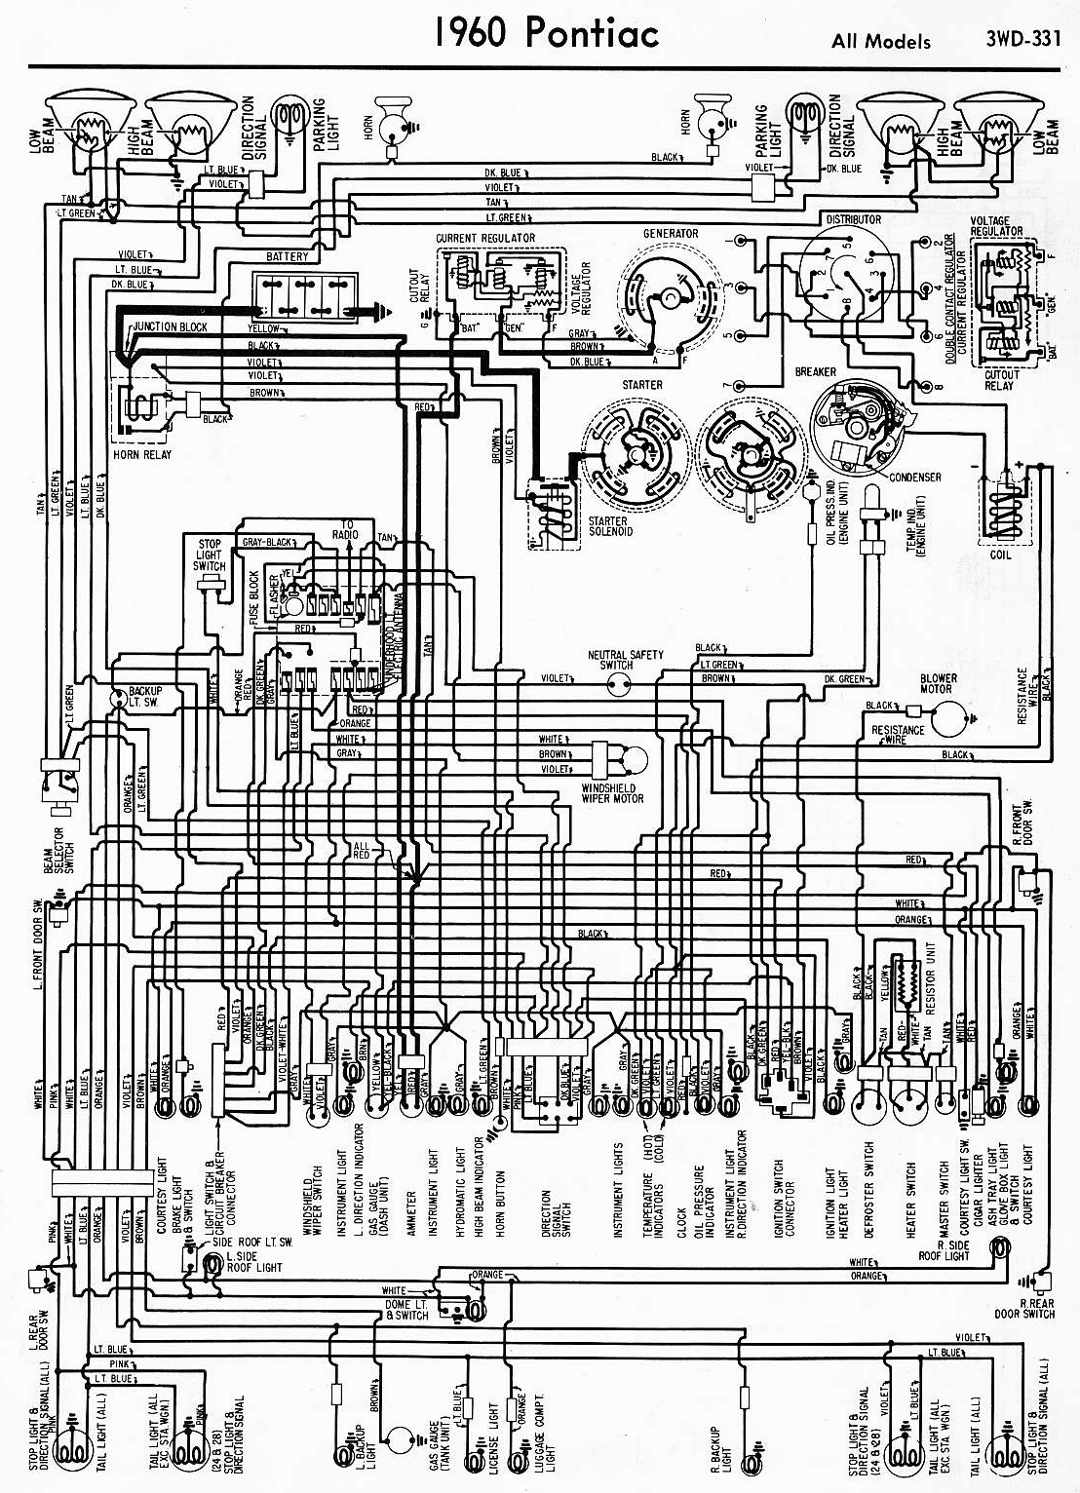 Classified Pontiac Grand Am Engine Diagram 2003 Pontiac Montana ...